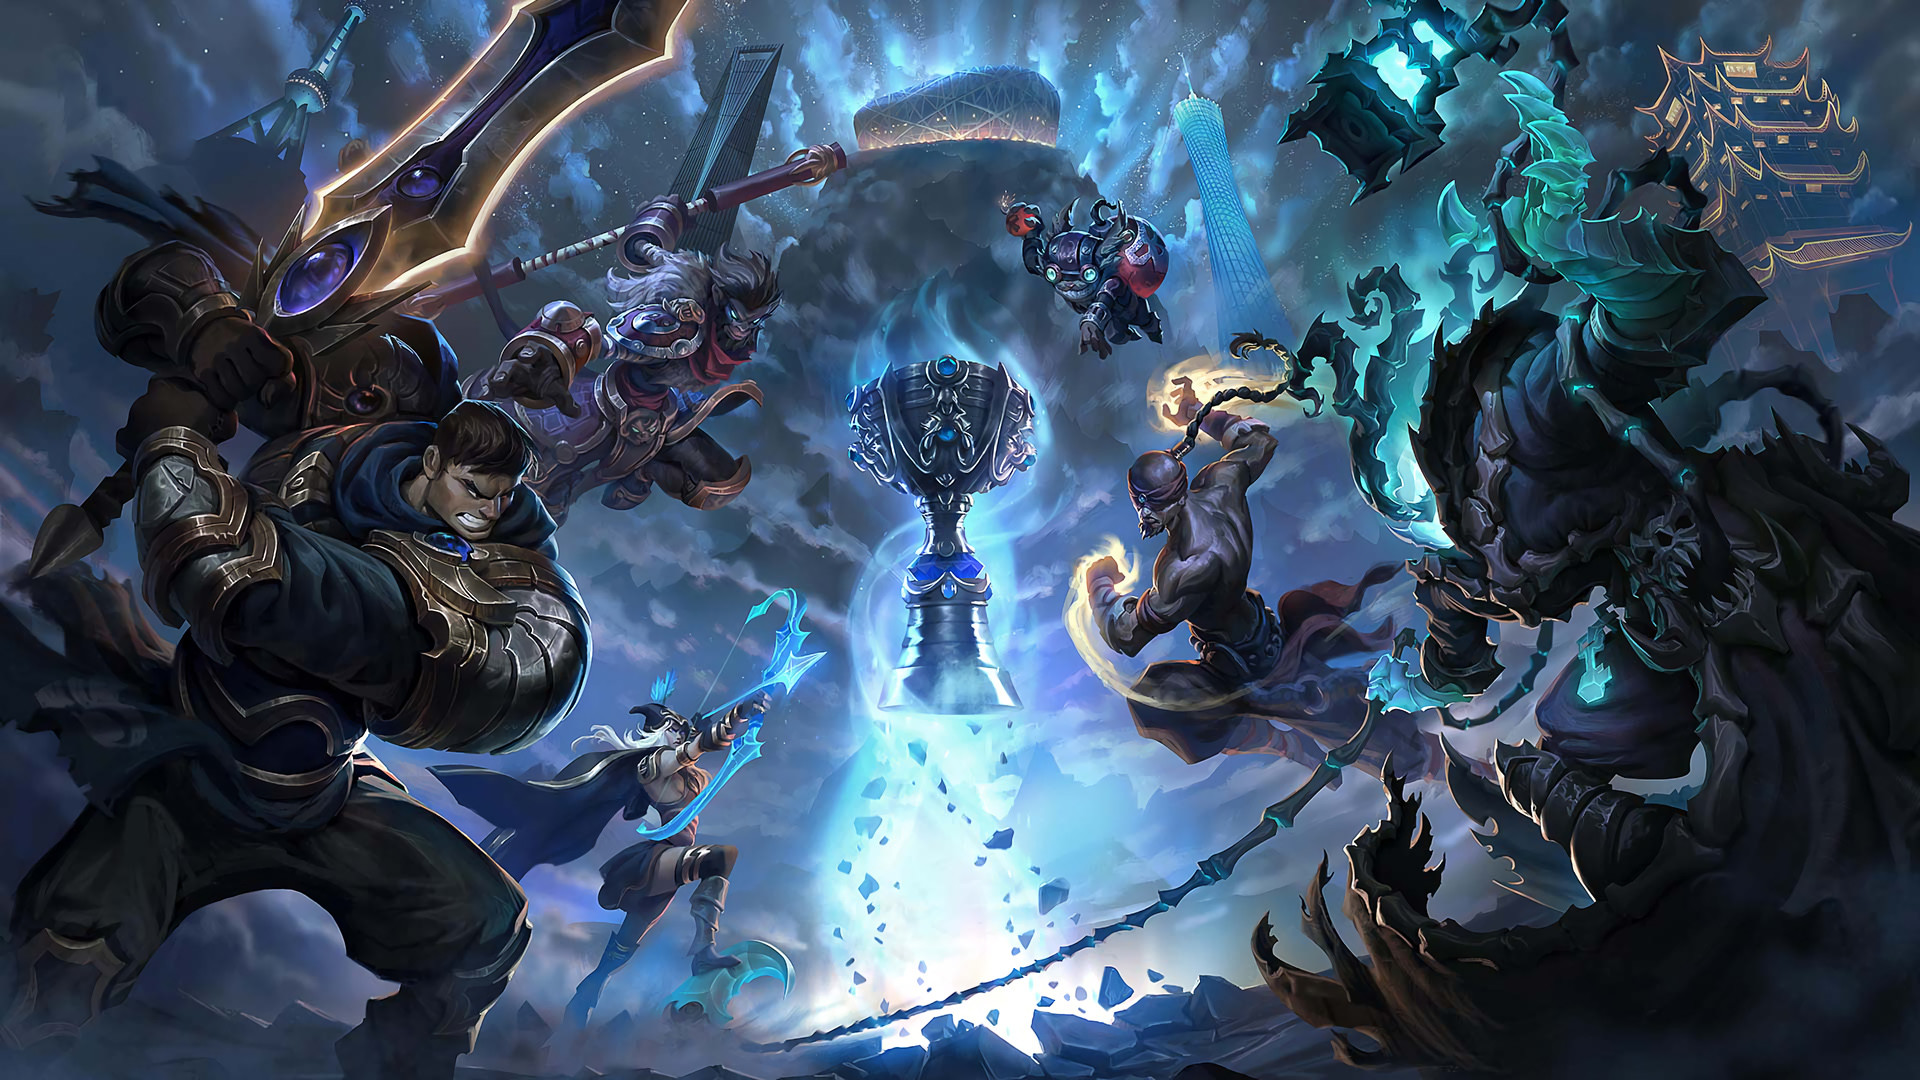 lol manual patch 4.10 download